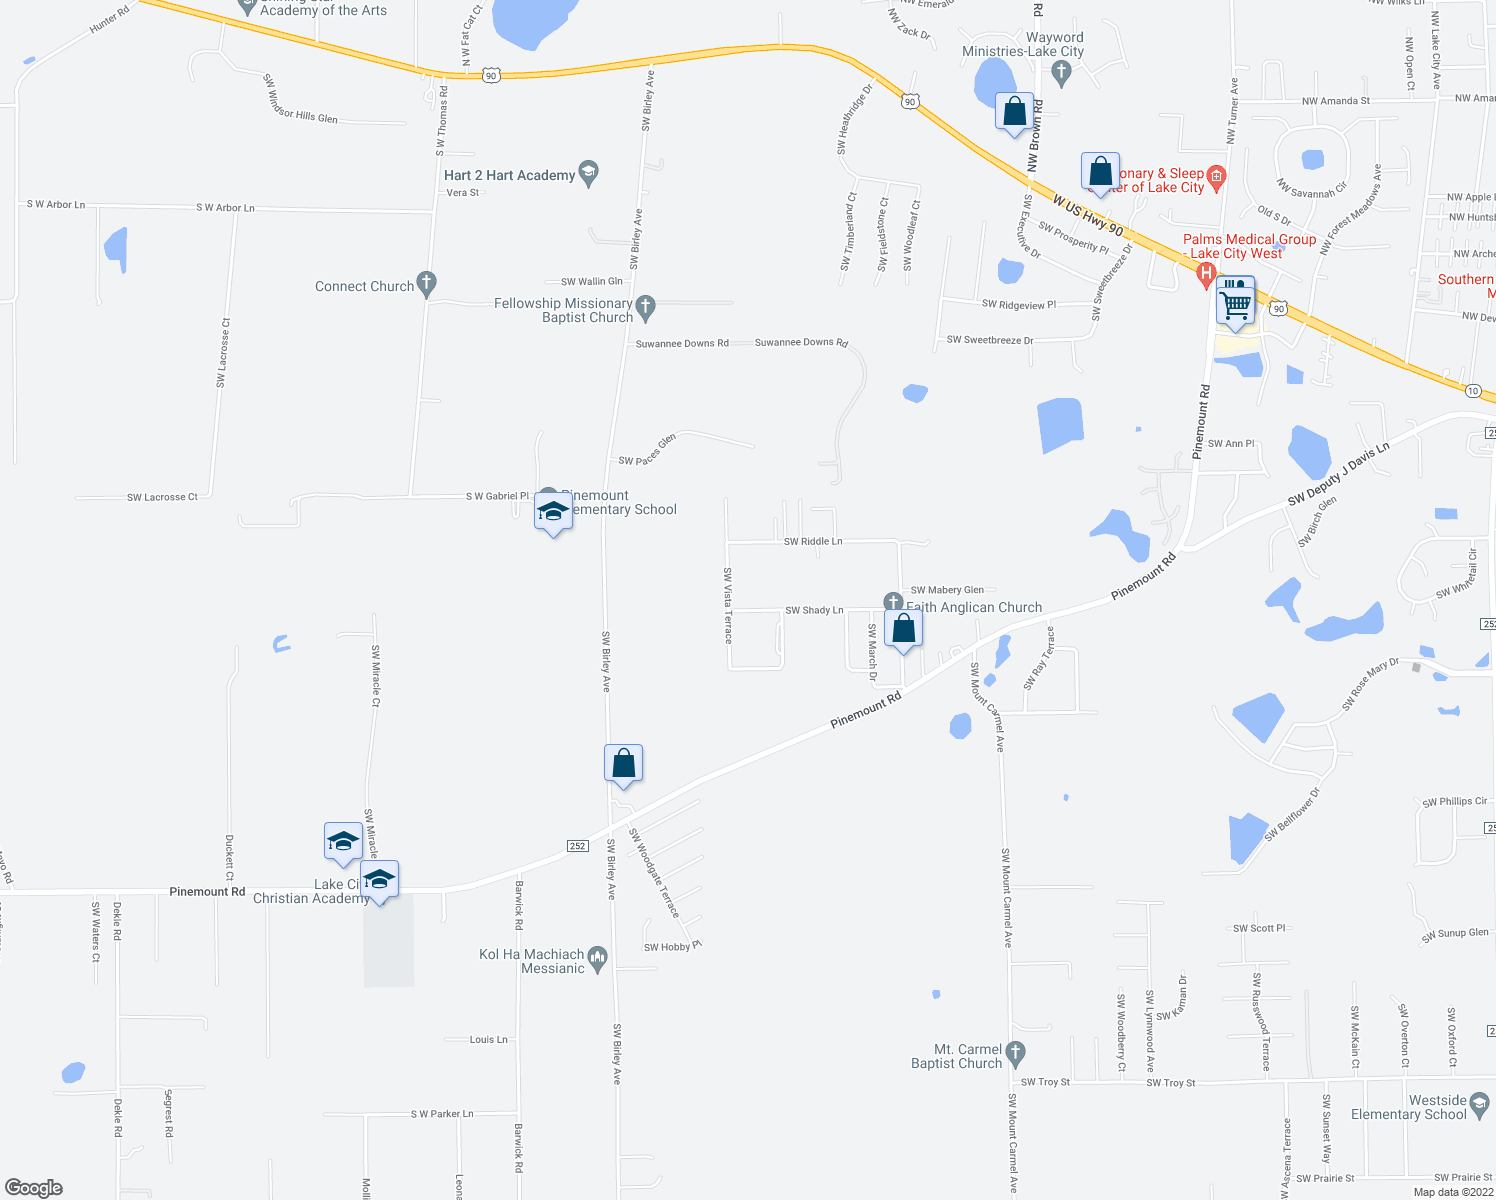 city map of fl